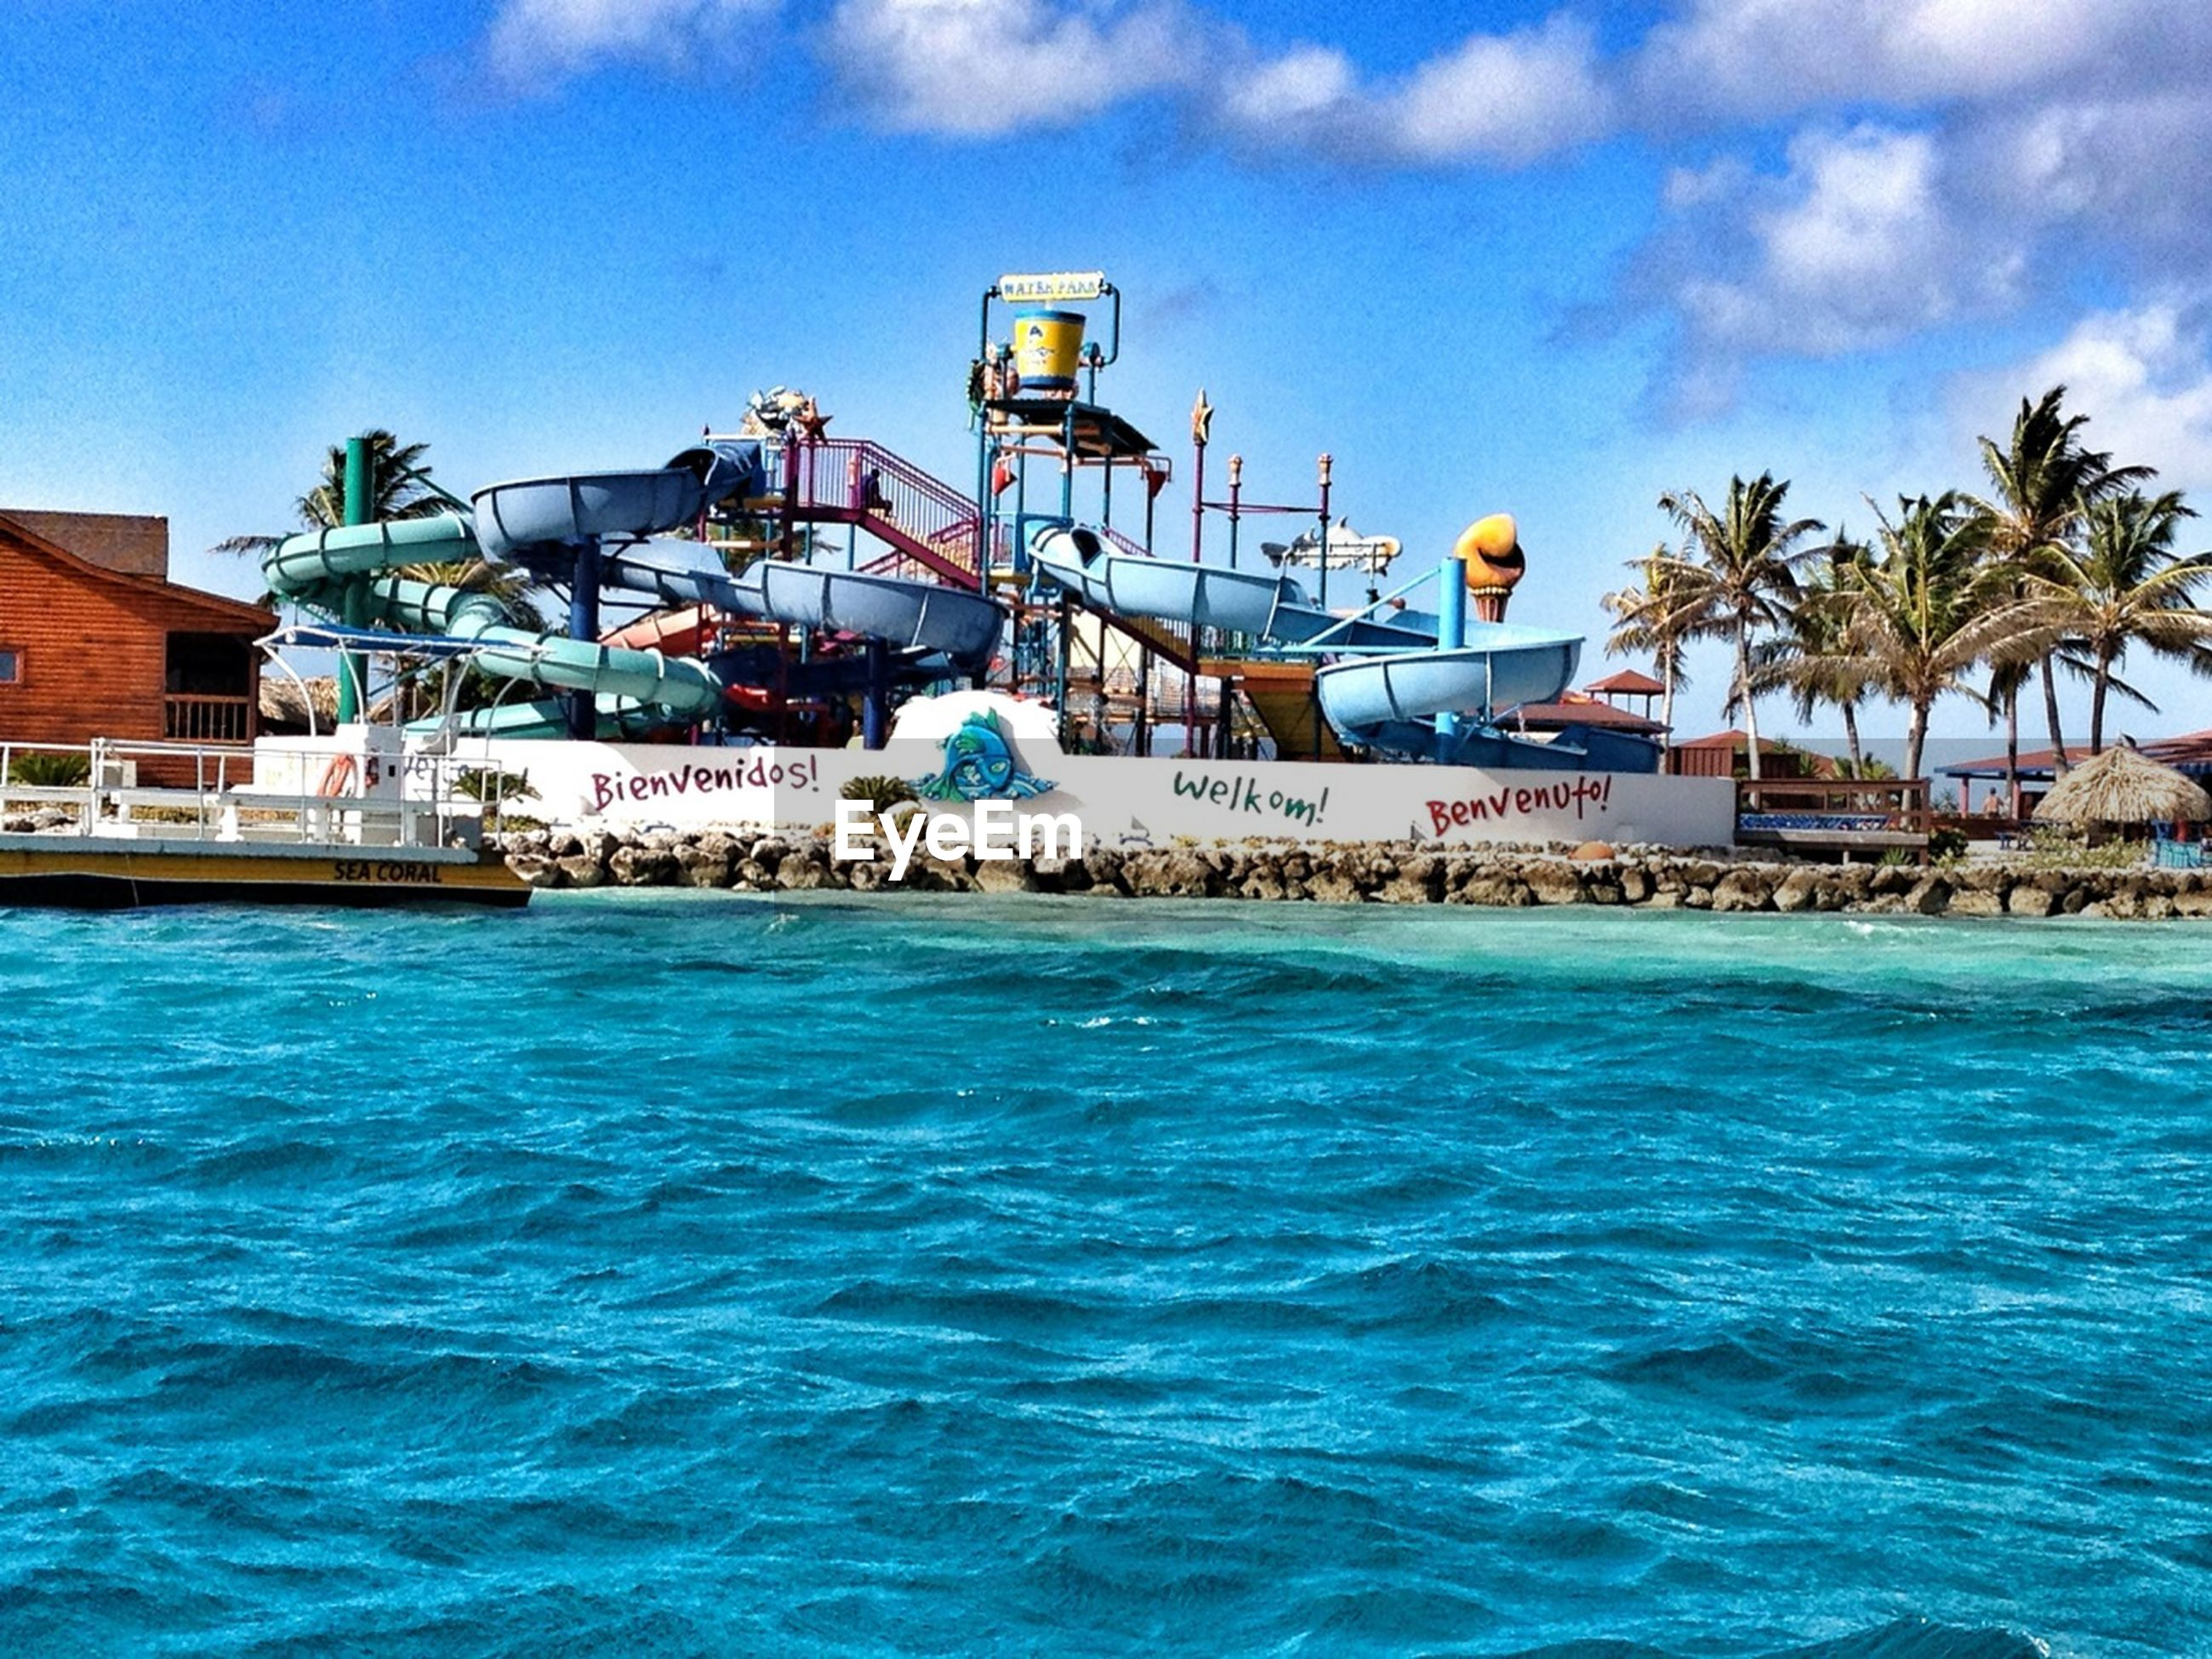 water, blue, sky, built structure, waterfront, architecture, building exterior, sea, nautical vessel, swimming pool, cloud, cloud - sky, moored, boat, house, transportation, palm tree, mode of transport, tree, turquoise colored